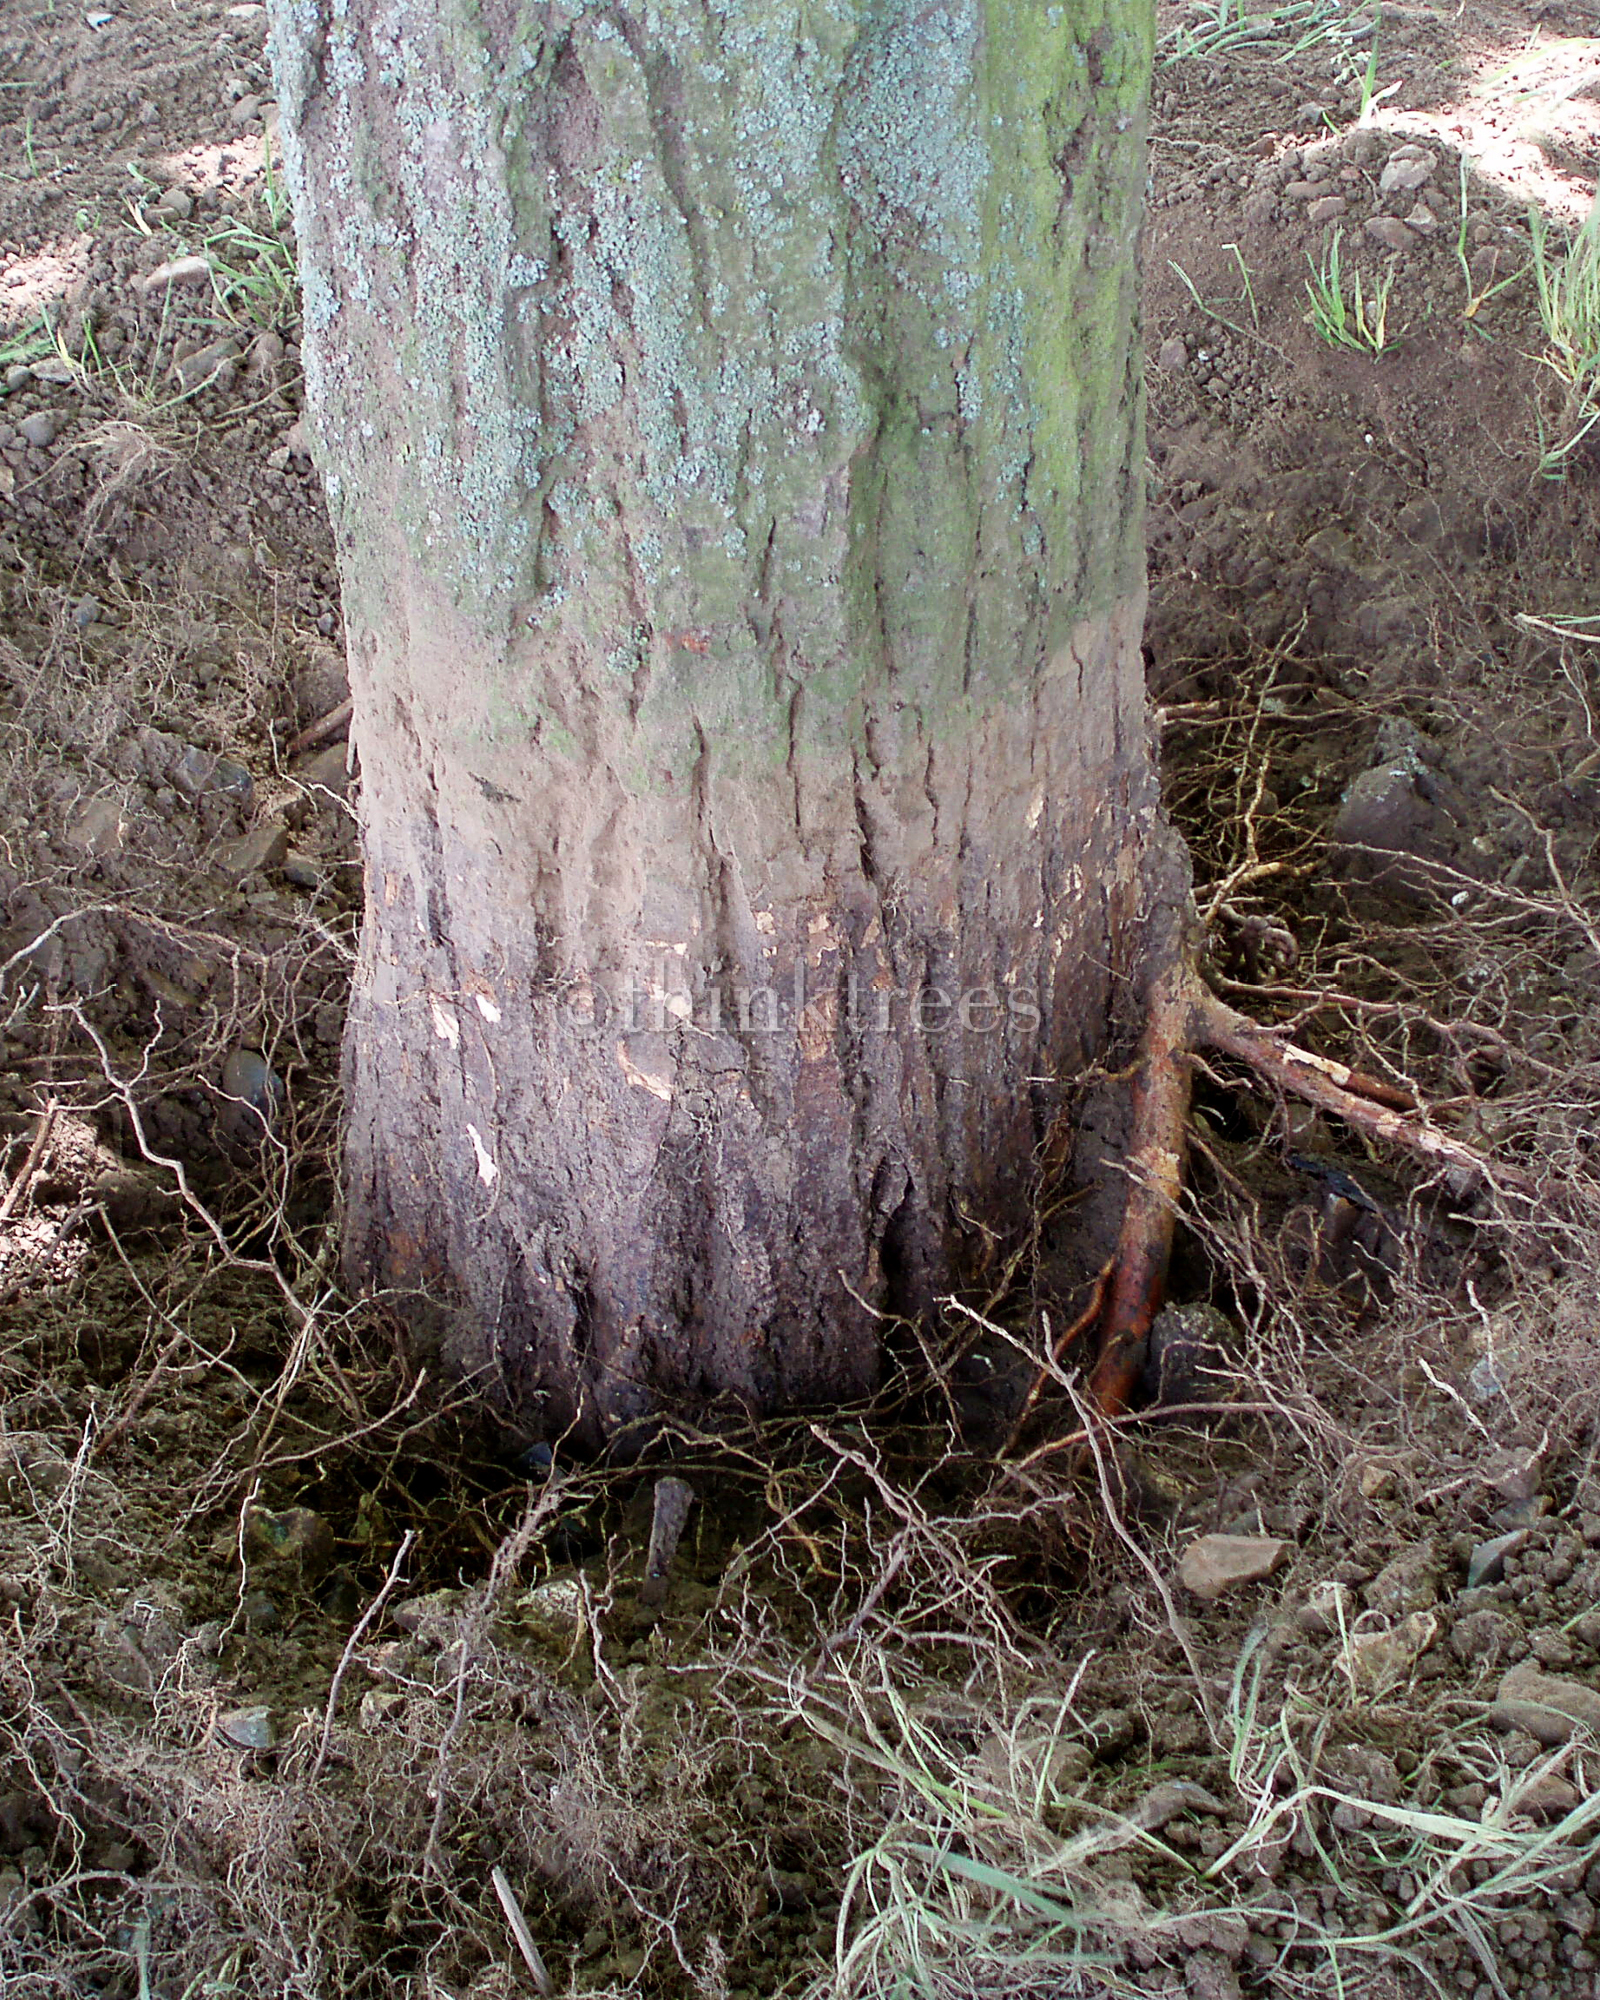 The result of root collar excavation carried out on a lime tree that had the soil level raised around the base detail